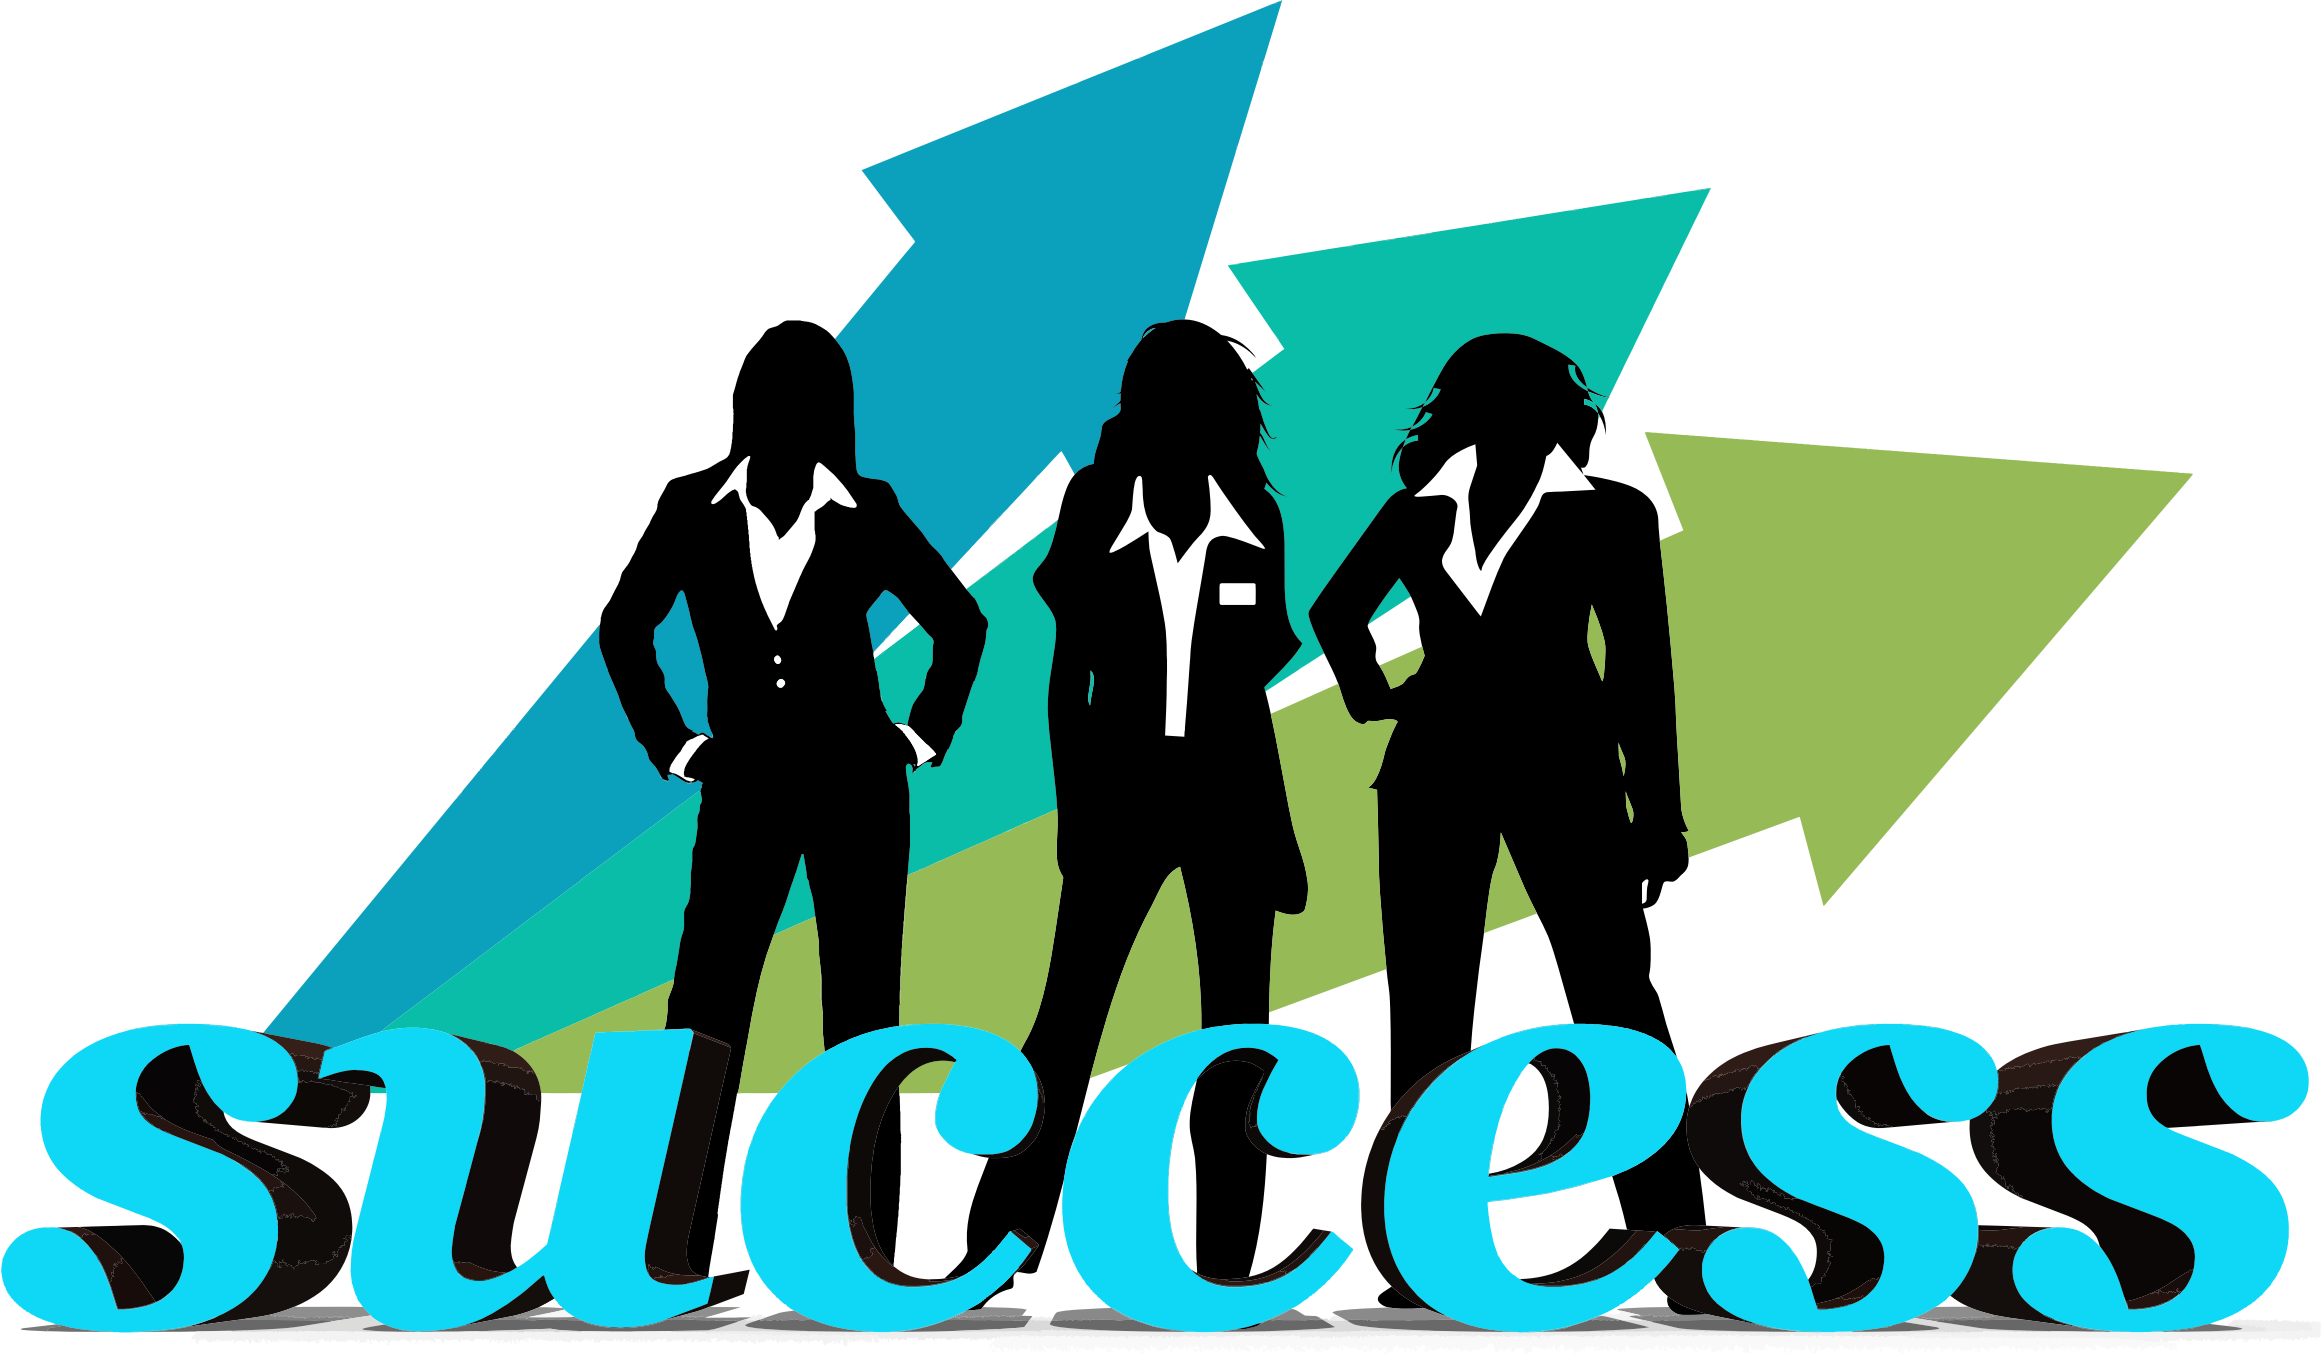 Success transparent business. Collection of clipart